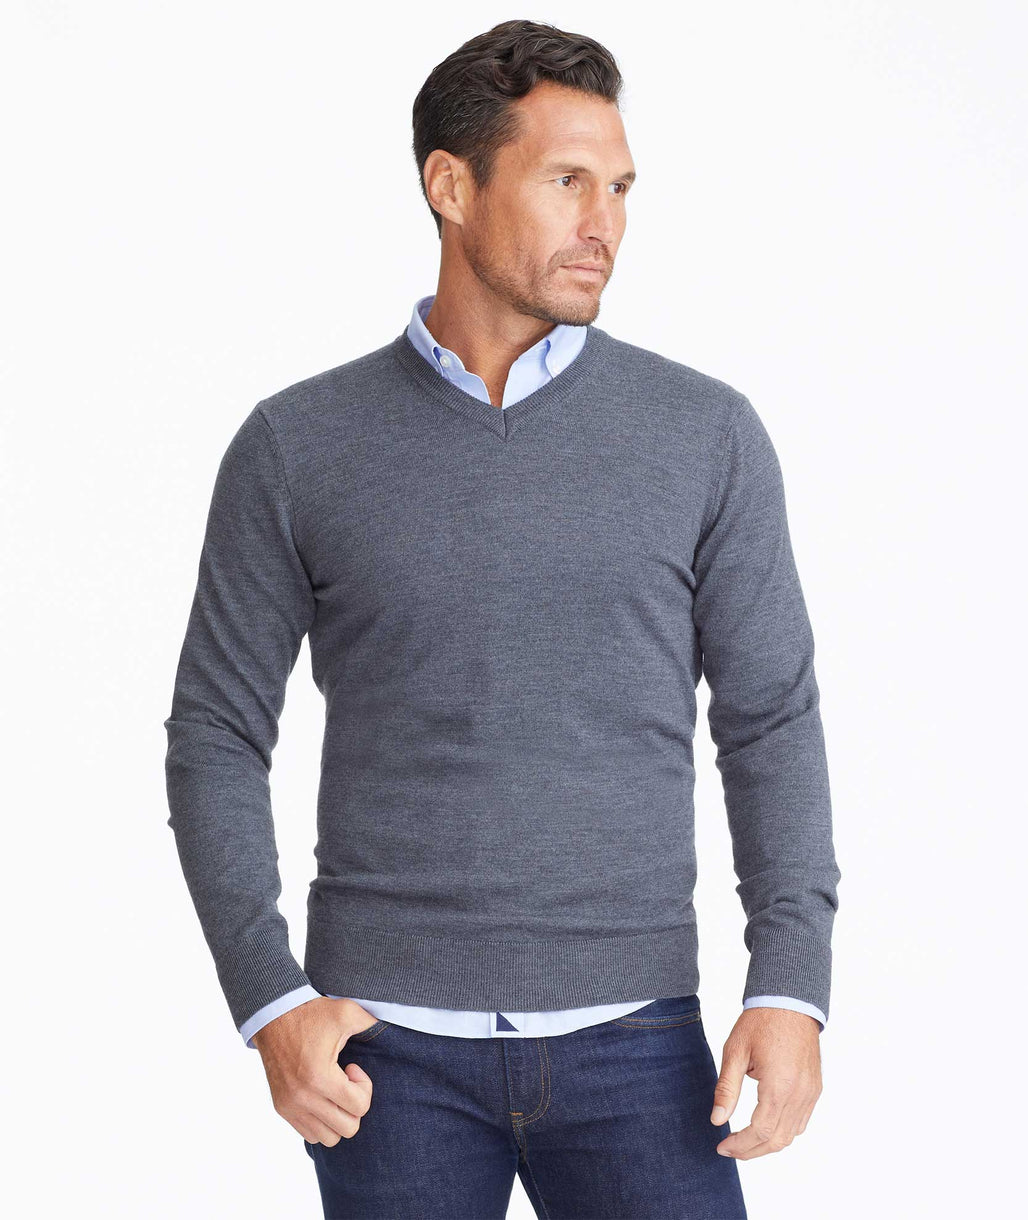 Model wearing a Dark Grey Merino Wool V-Neck Sweater